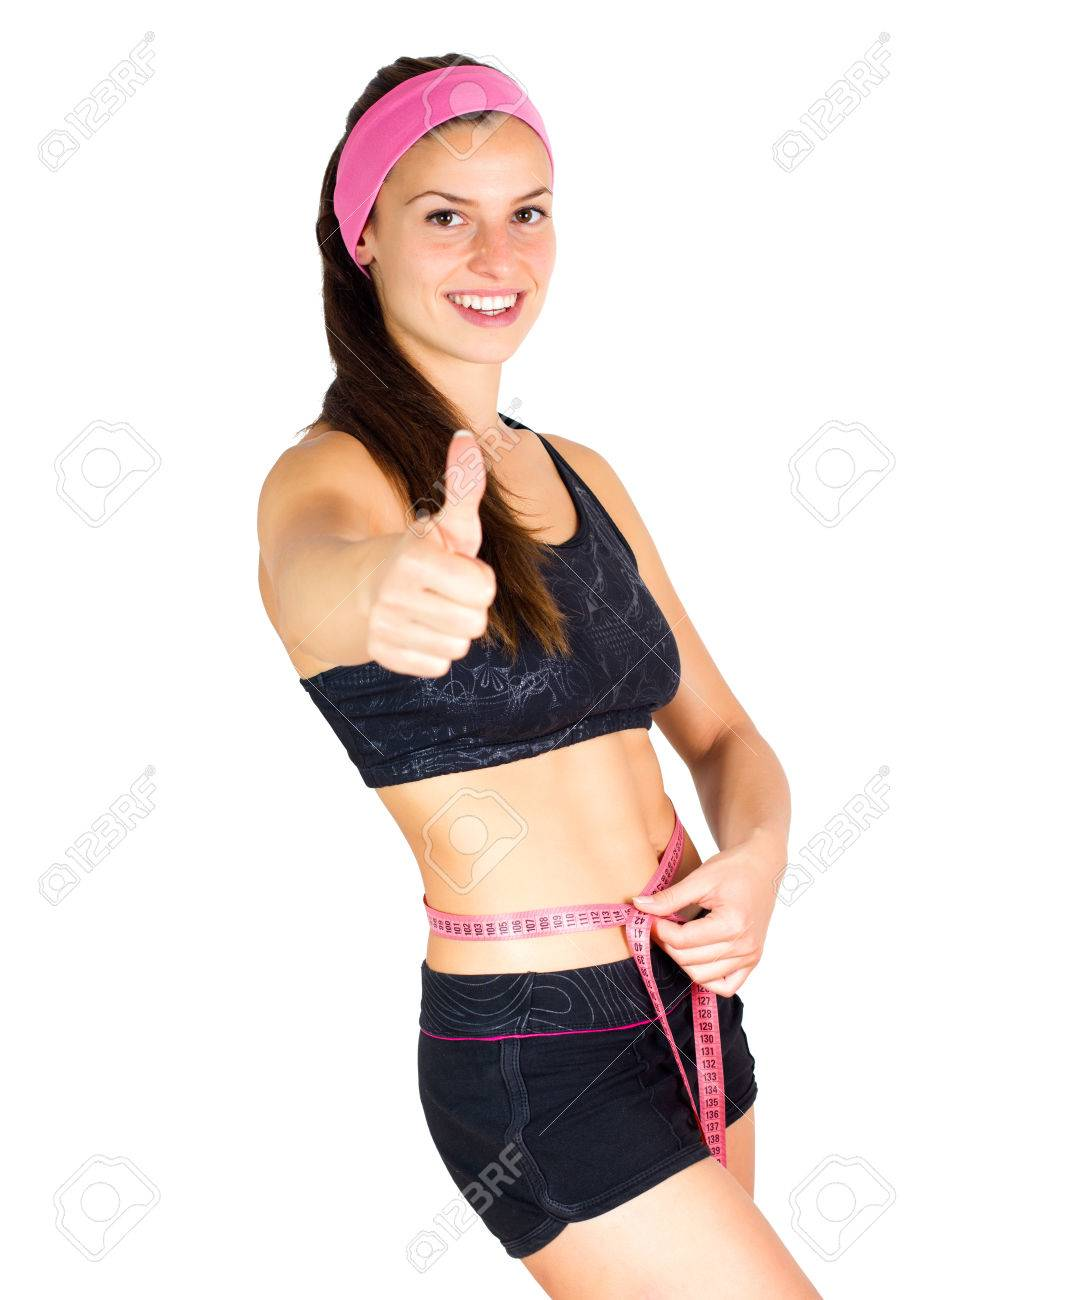 Slim Young Woman with perfect healthy fitness body, measuring her thin waist with a tape measure. - 46977936